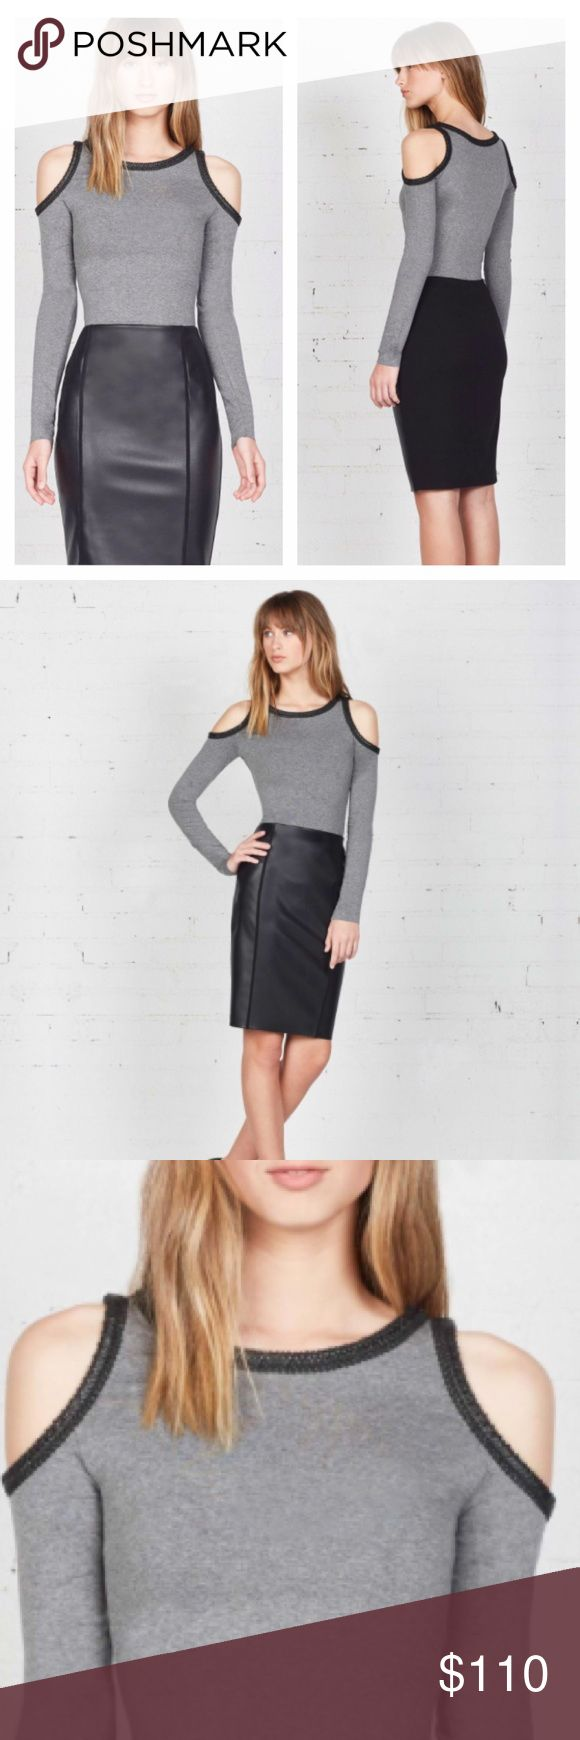 Bailey 44 Harlow Top The Bailey44 Harlow Top is a super soft, heavy stretch jersey long sleeve top with flirty cold shoulder cut-outs and contrast eco leather trim detail.  Length: 26 in.  96% Rayon, 4% Spandex body  70% Polyurethane, 30% Nylon eco leather detail Bailey 44 Tops